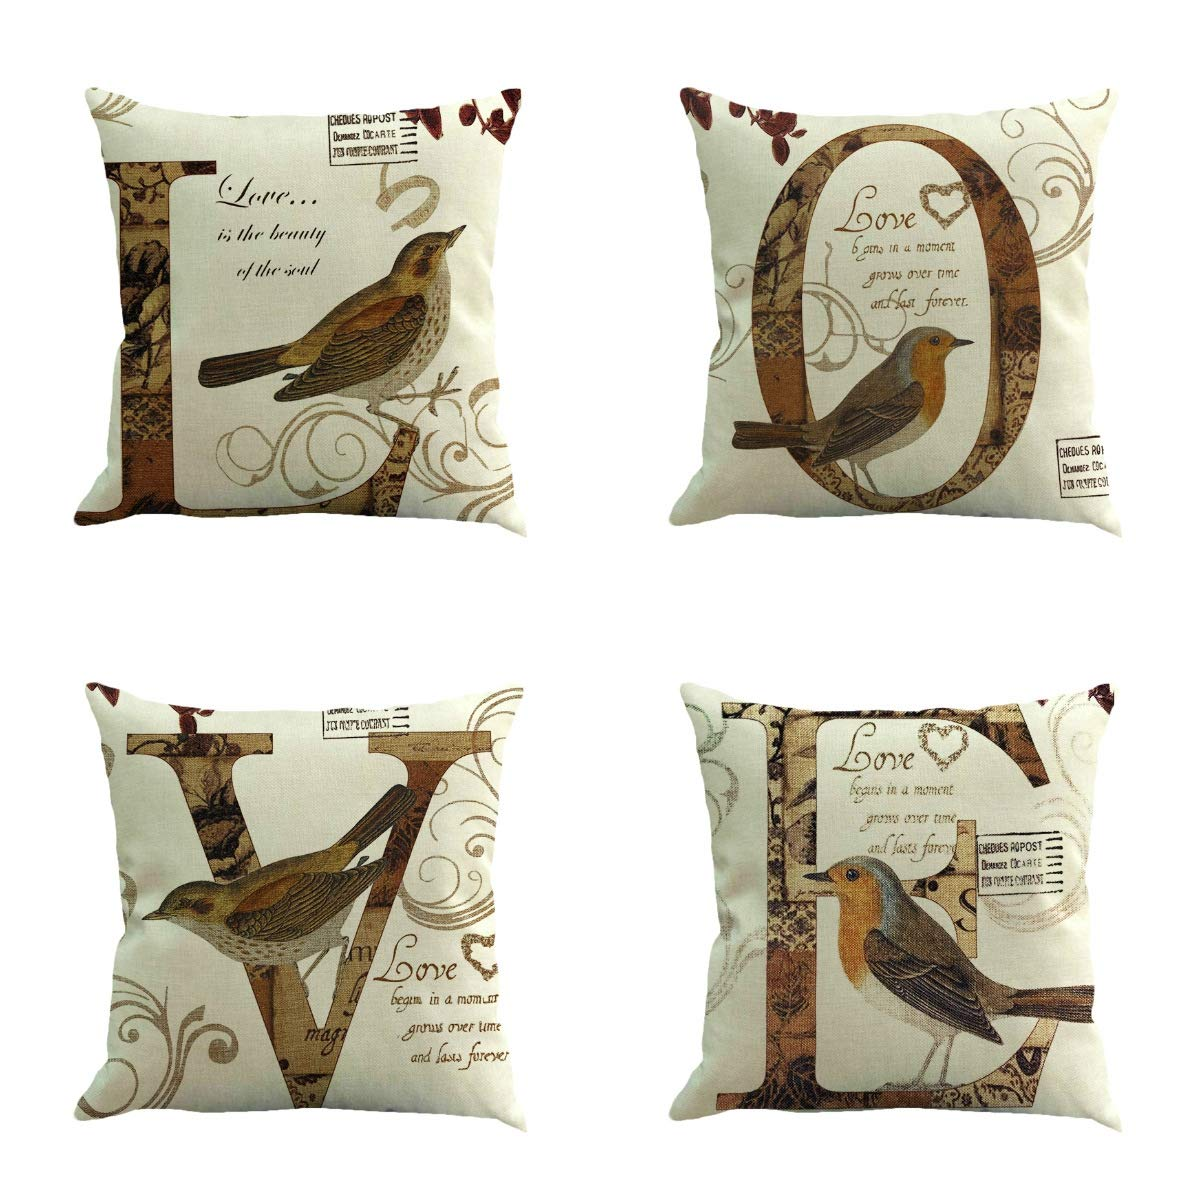 QISHOP Throw Pillow Covers - Linen Cotton Blend Decorative Design Zippered for Couch 18x18 Inch Pack of 4 (Love)